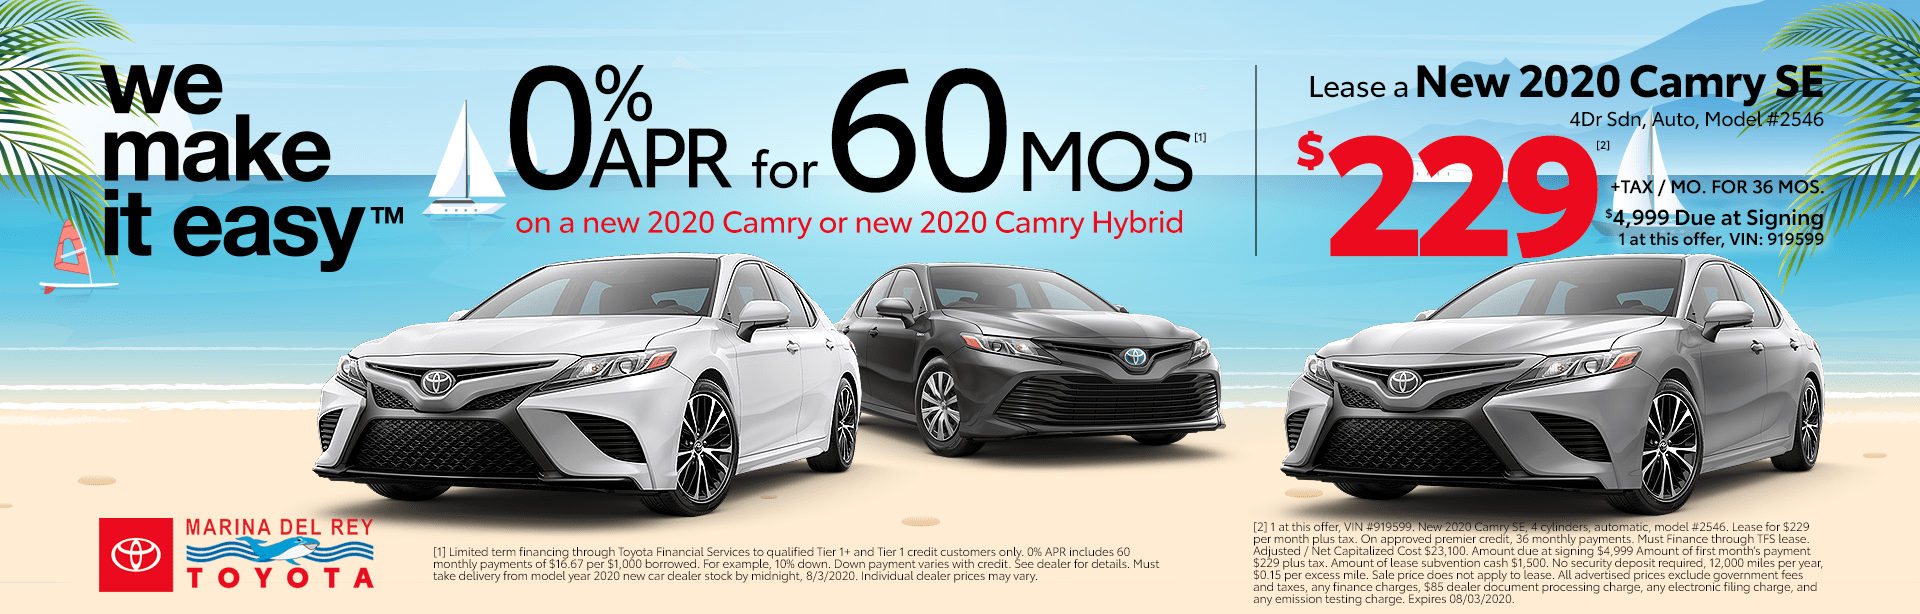 Toyota Camry Lease Special - Toyota Camry Hybrid Zero Percent APR